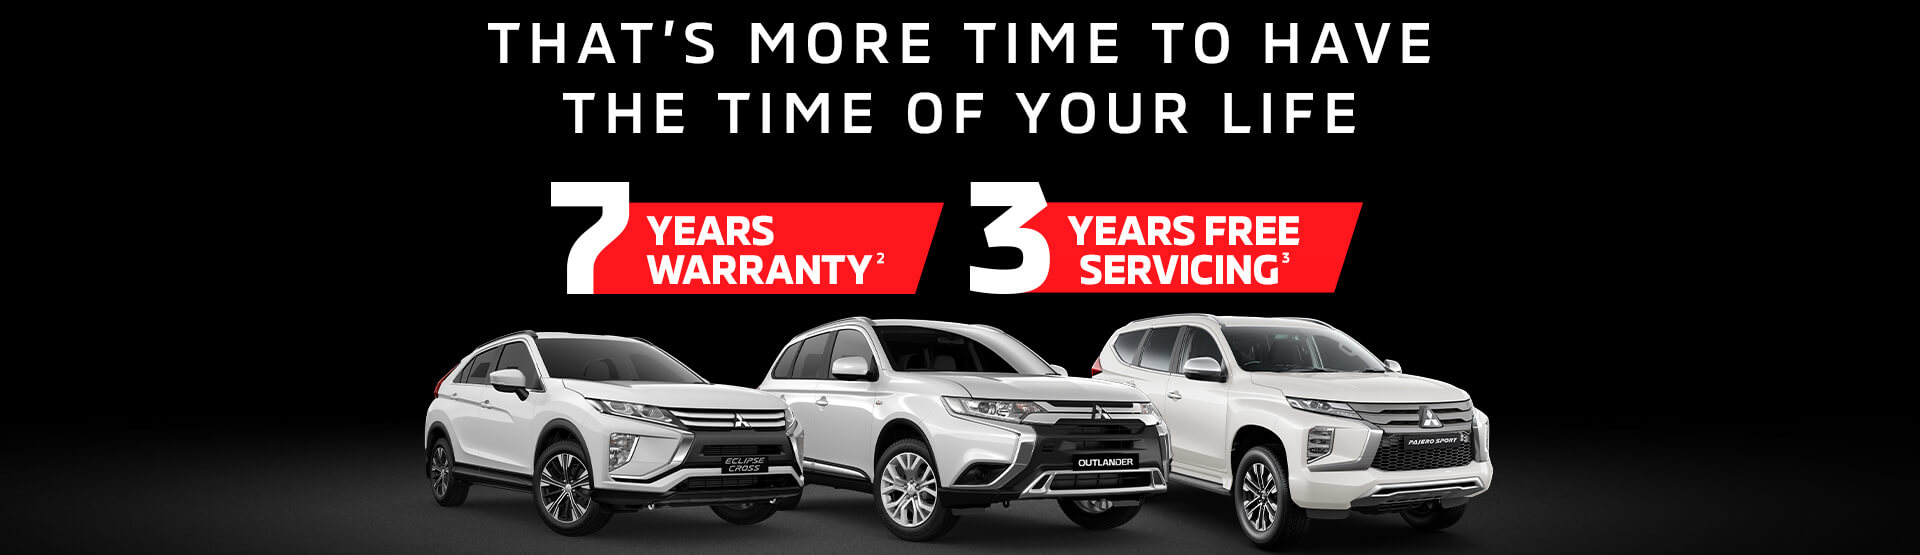 Mitsubishi 7 Year Warranty / 3 Years Service. That's more time to have the time of your life.